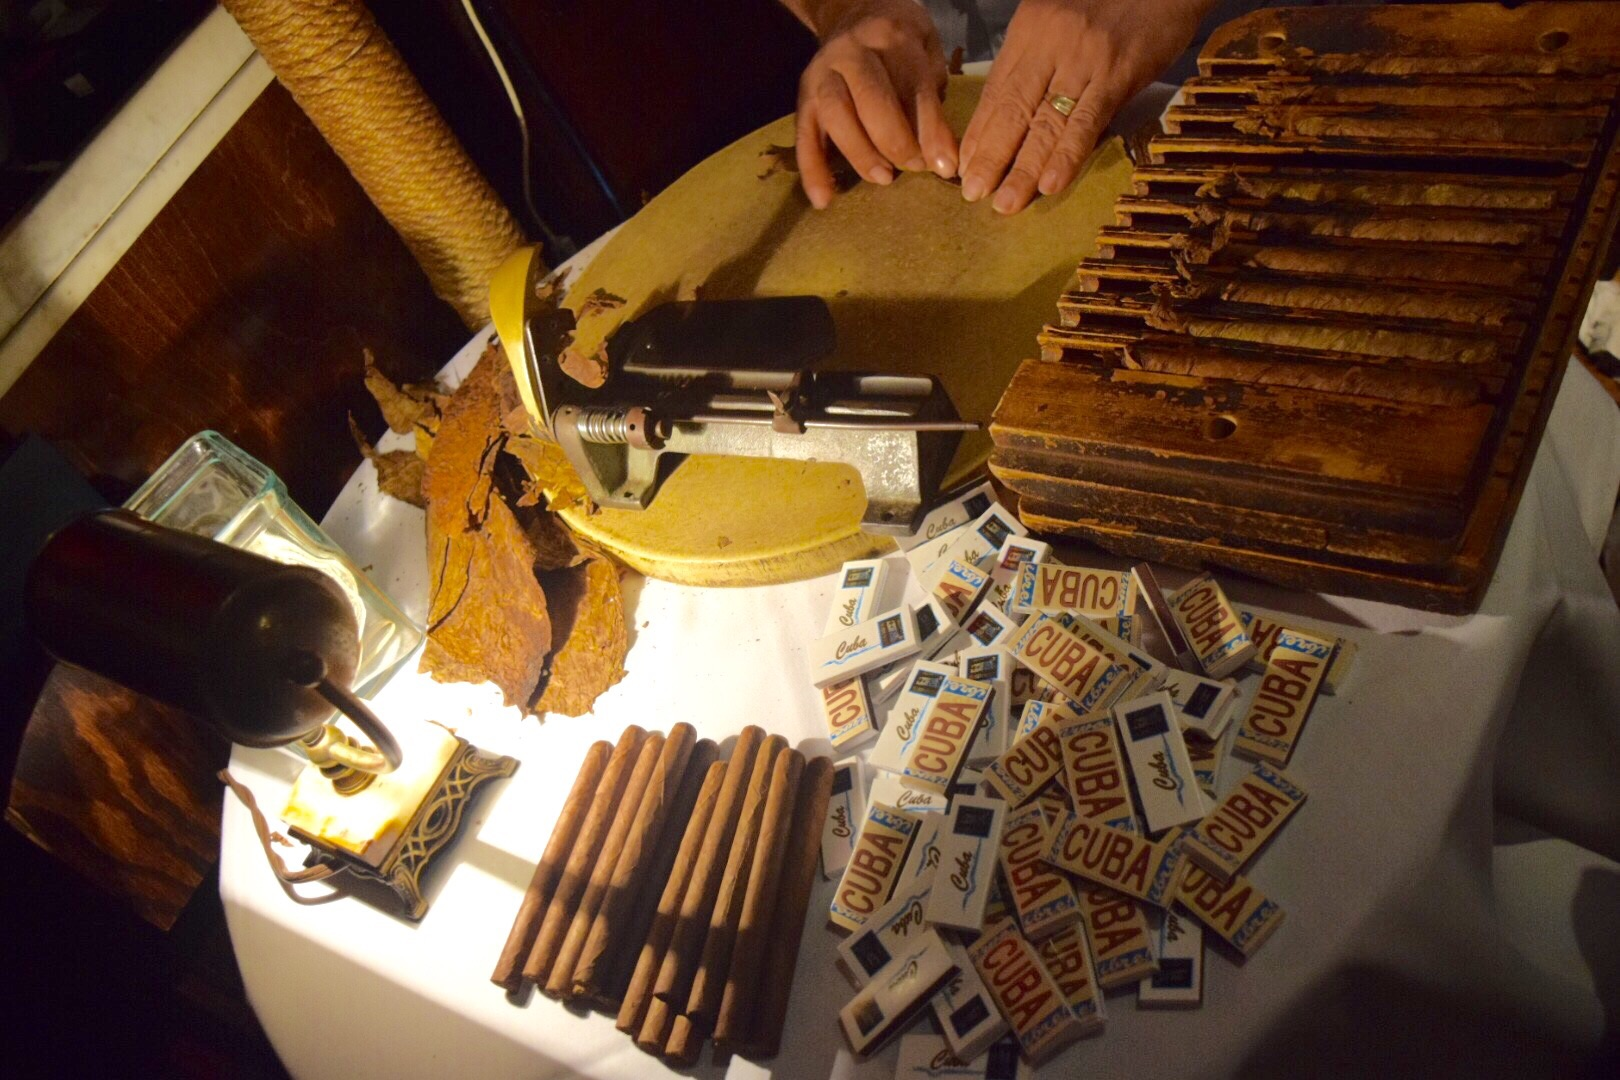 What's a birthday in Cuba without hand rolled cigars?